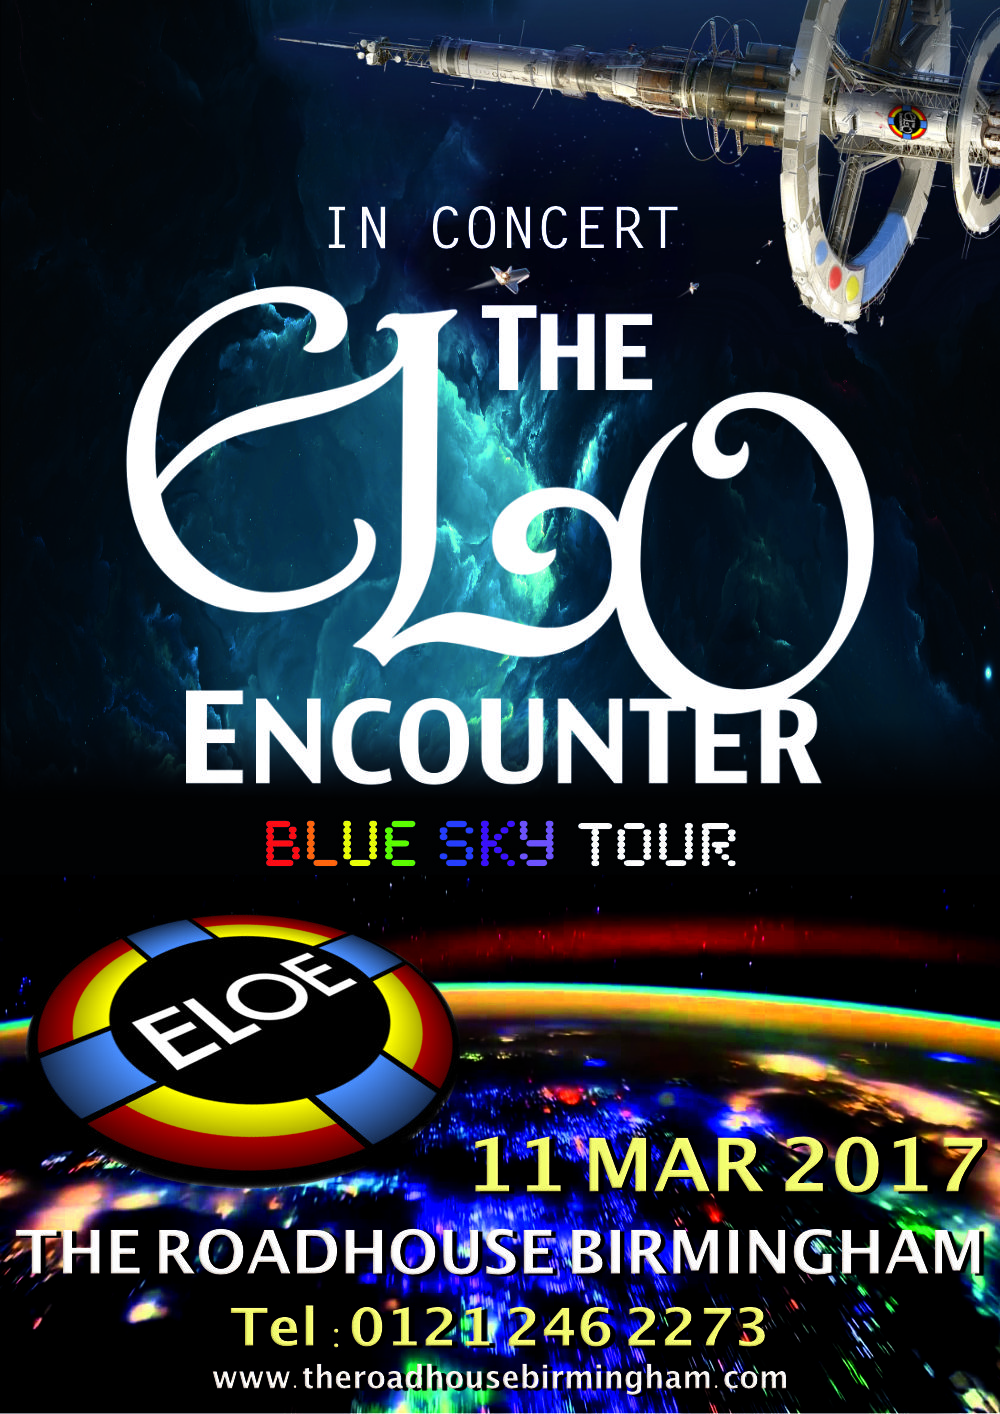 The Roadhouse Birmingham - ELO Encounter Poster